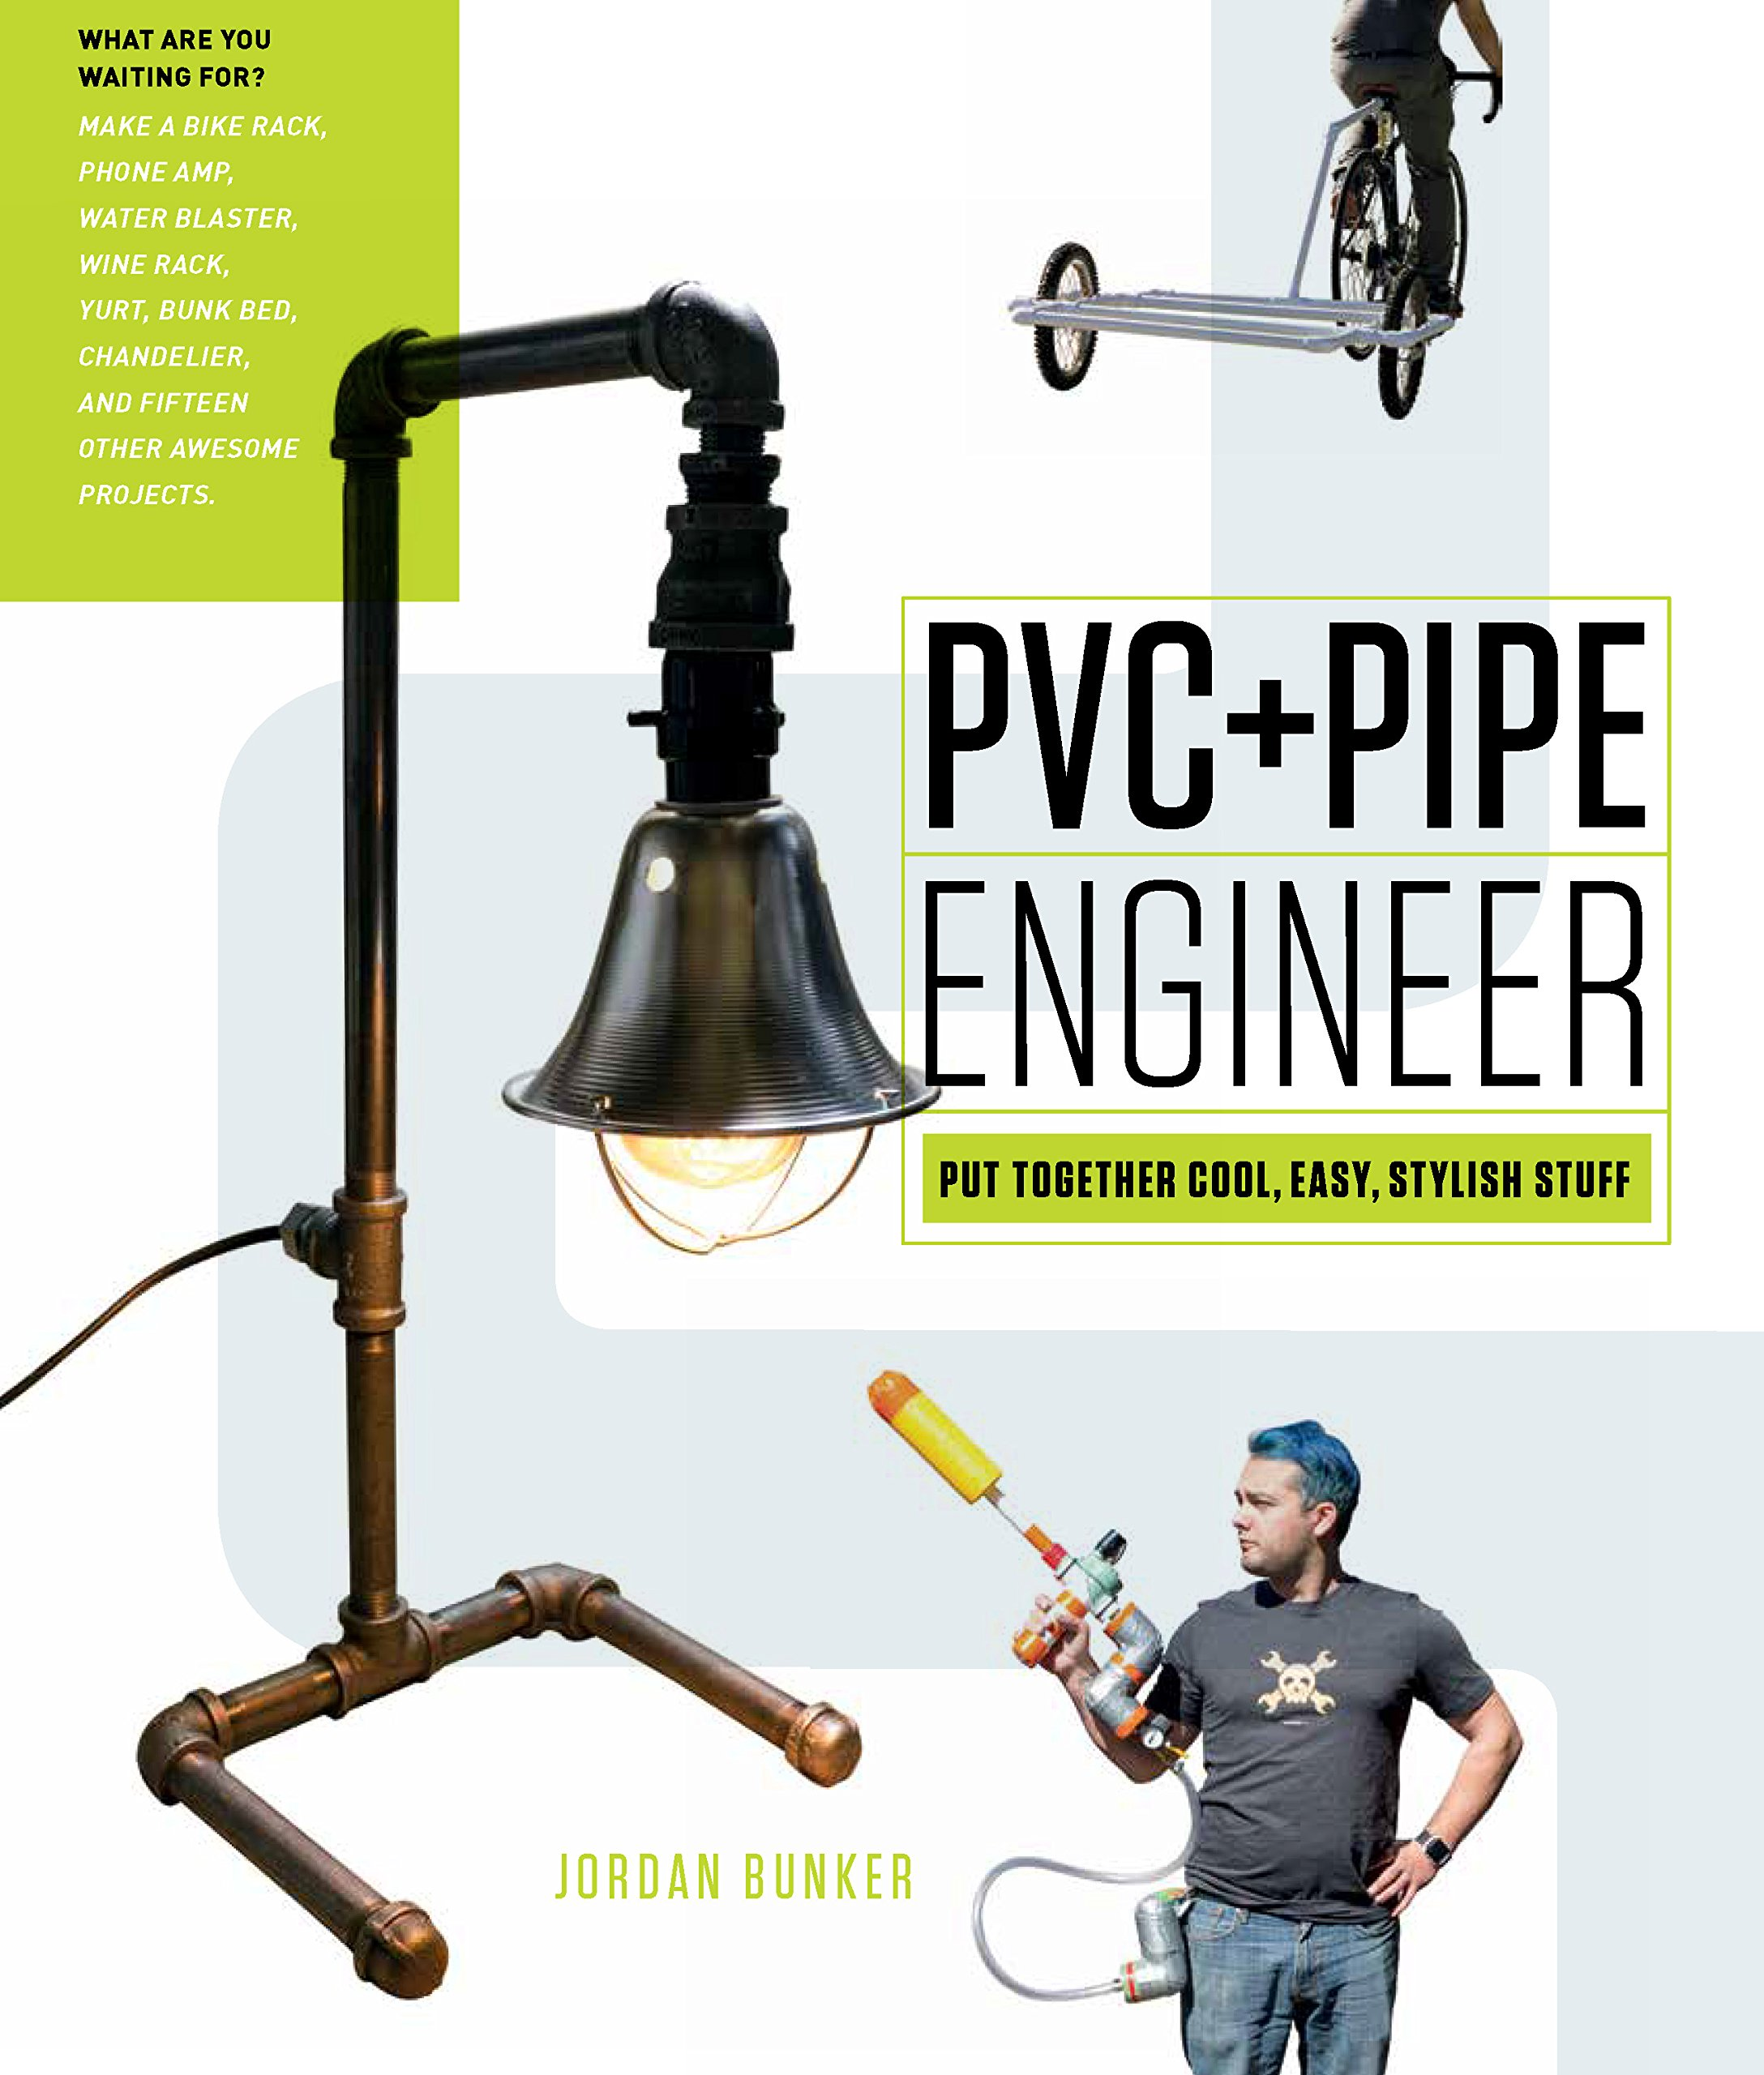 amazon pvc and pipe engineer put together cool easy maker